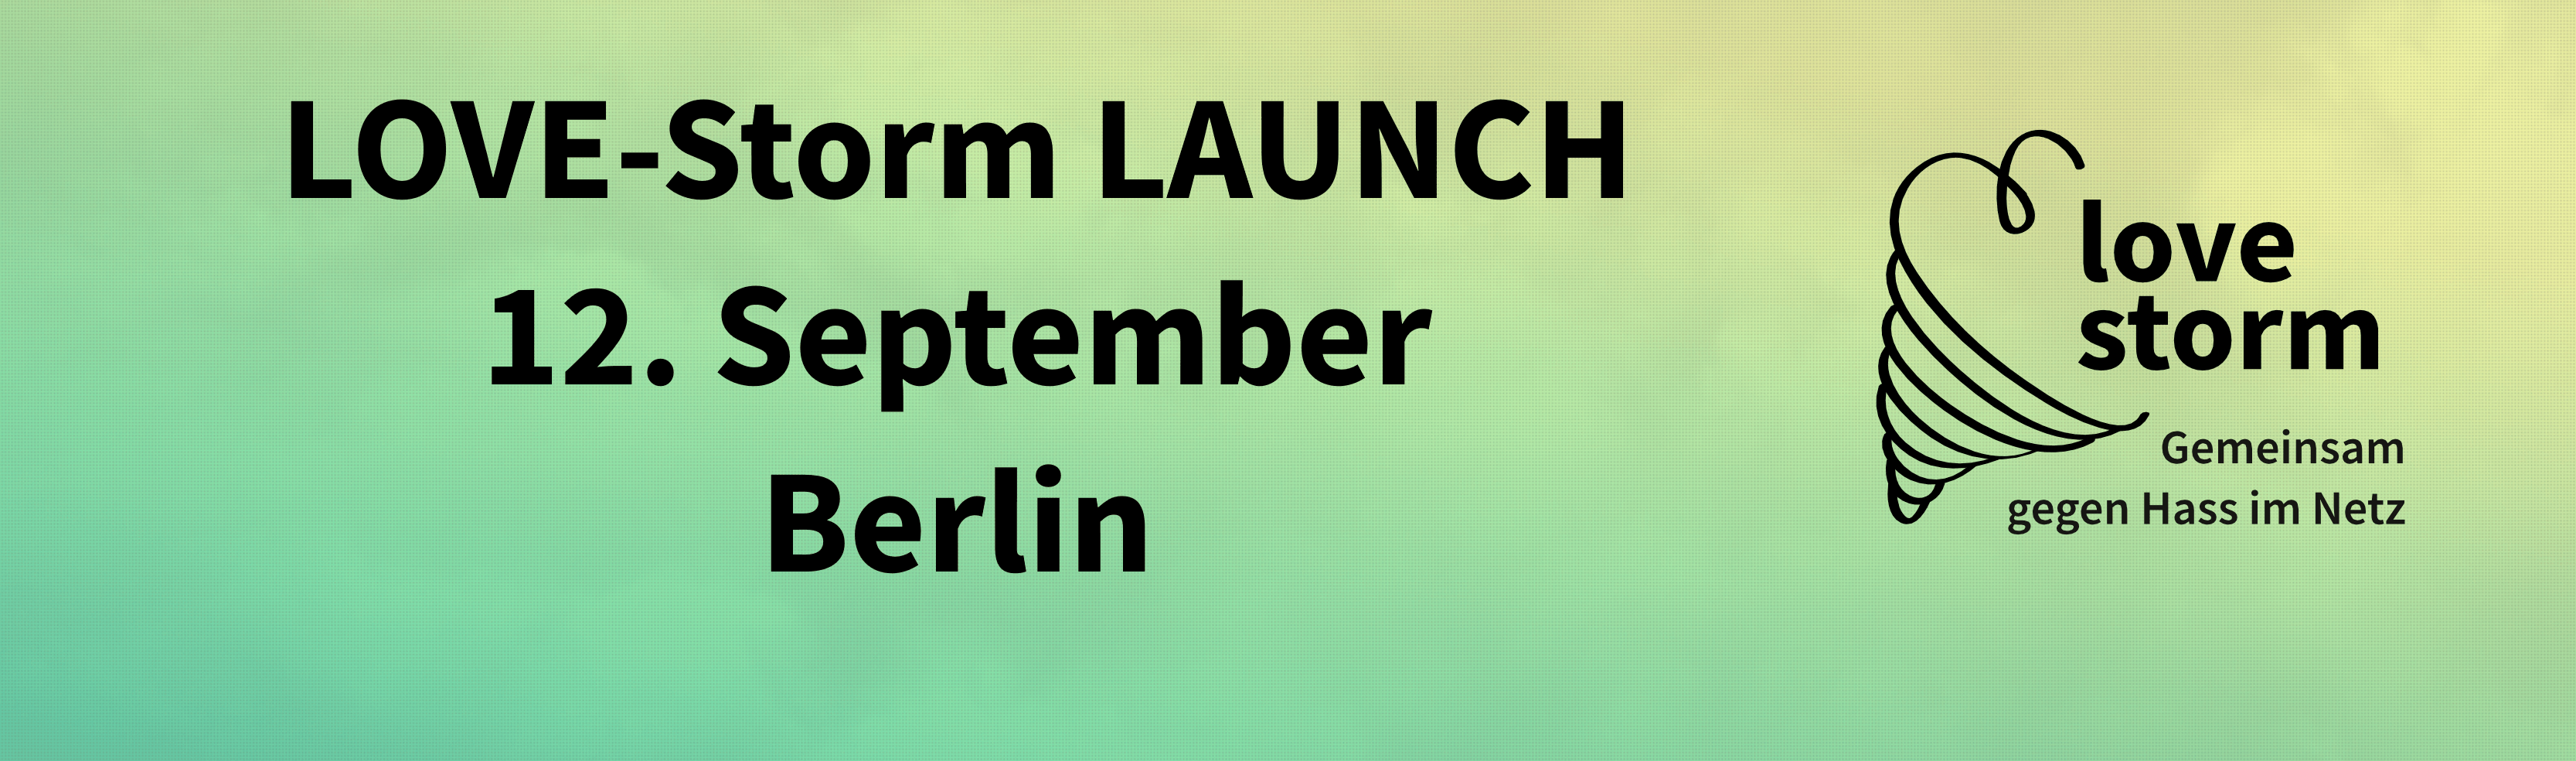 Header Launchparty